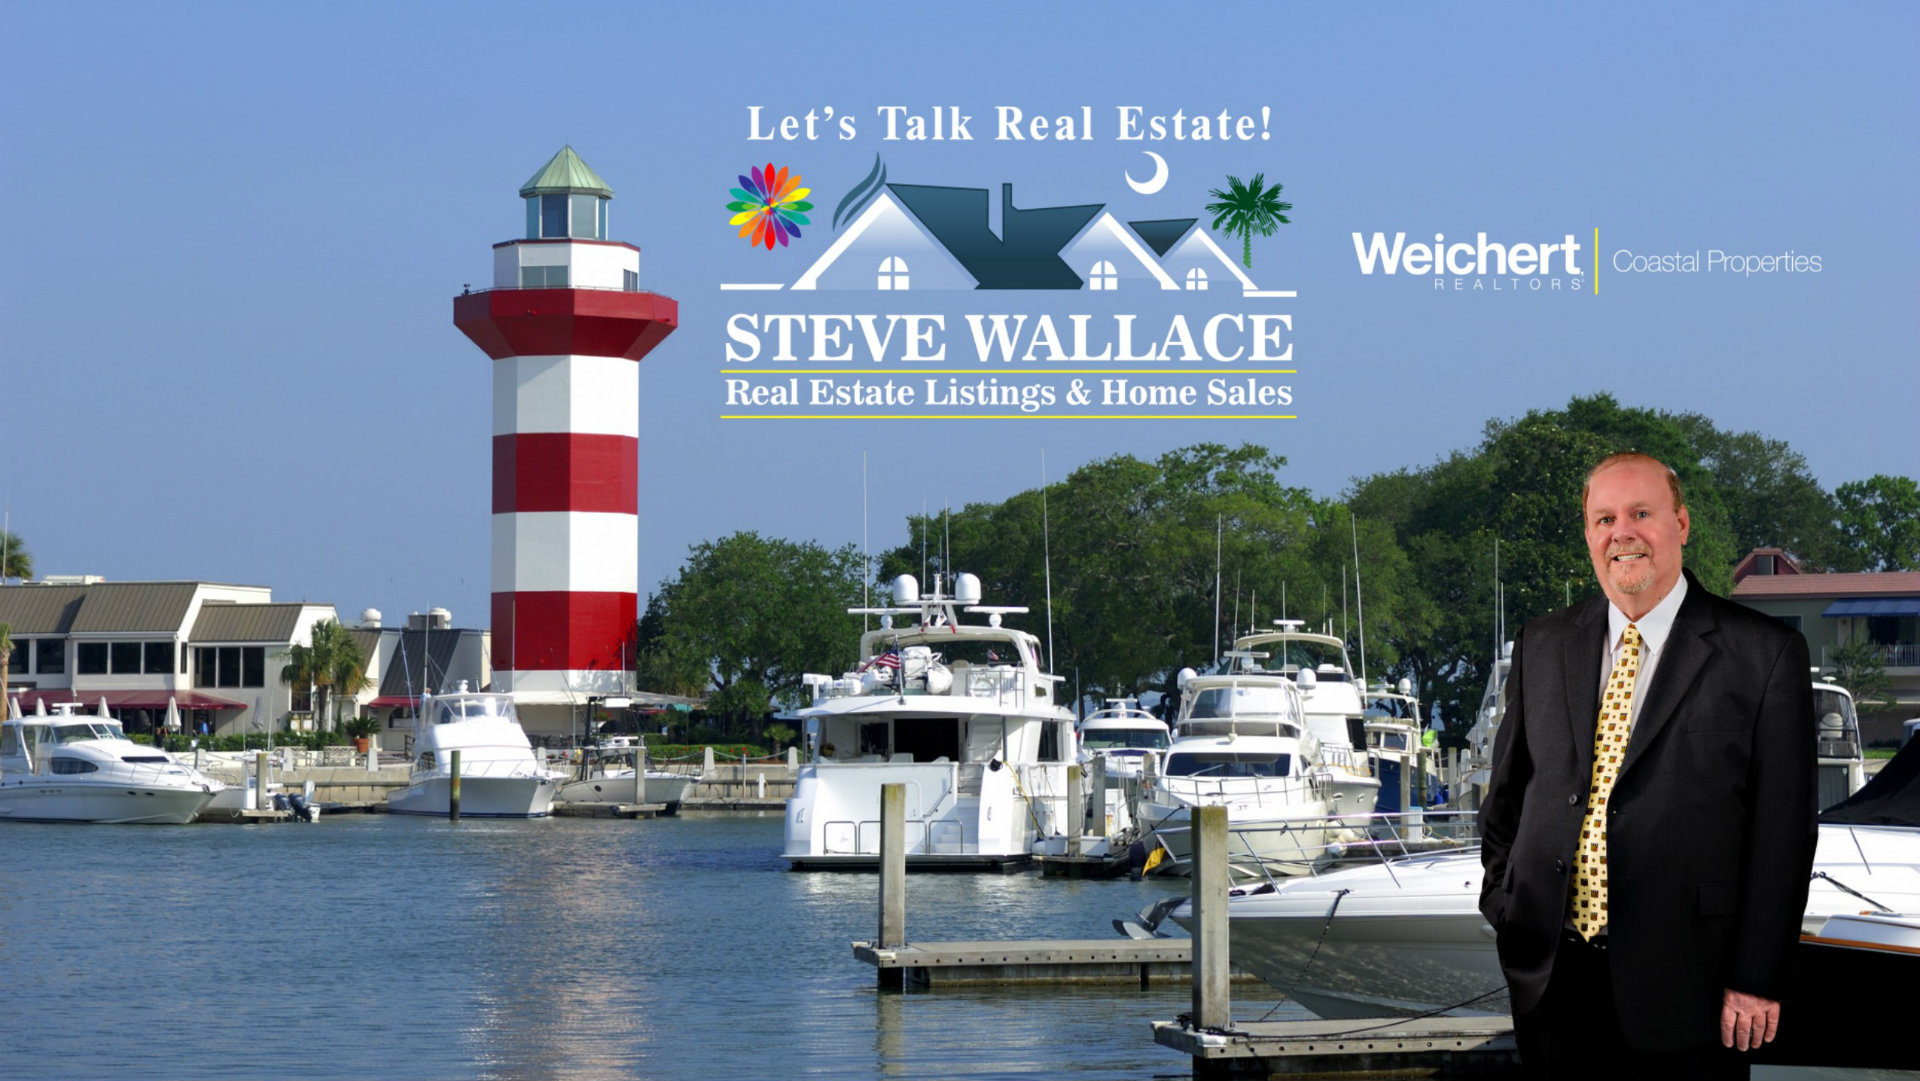 Hilton Head, Island, SC, Real Estate, Homes, Steve Wallace, Vilas, Condos, Beach